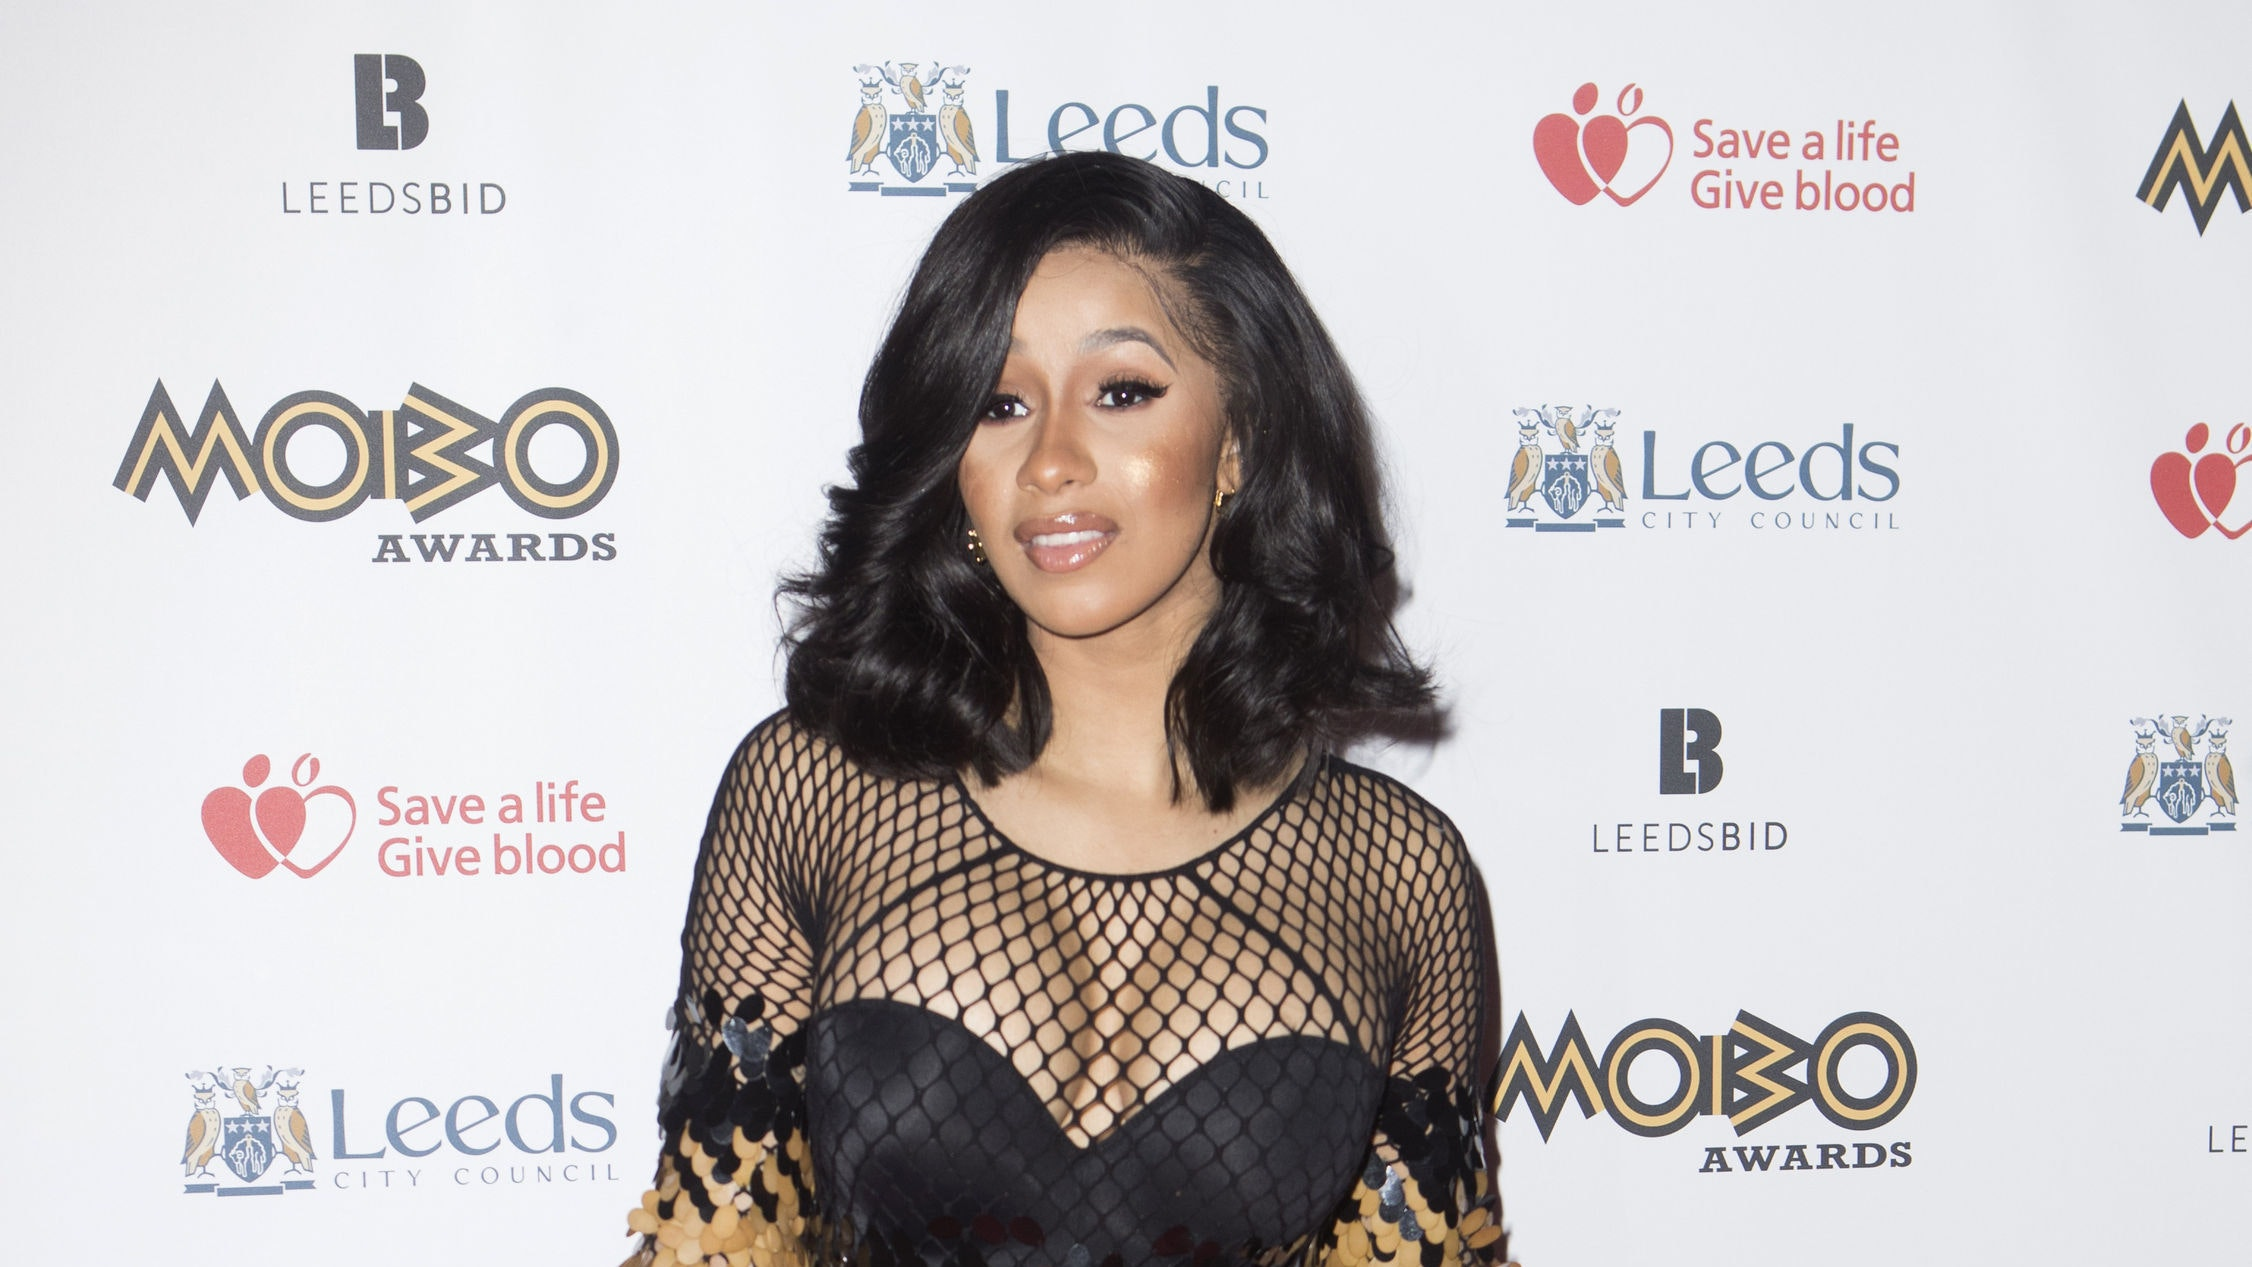 Cardi B Explains Why Her Baby Is Named Kulture On Twitter: Cardi B Explains Why Her Newborn Daughter Is Named Kulture